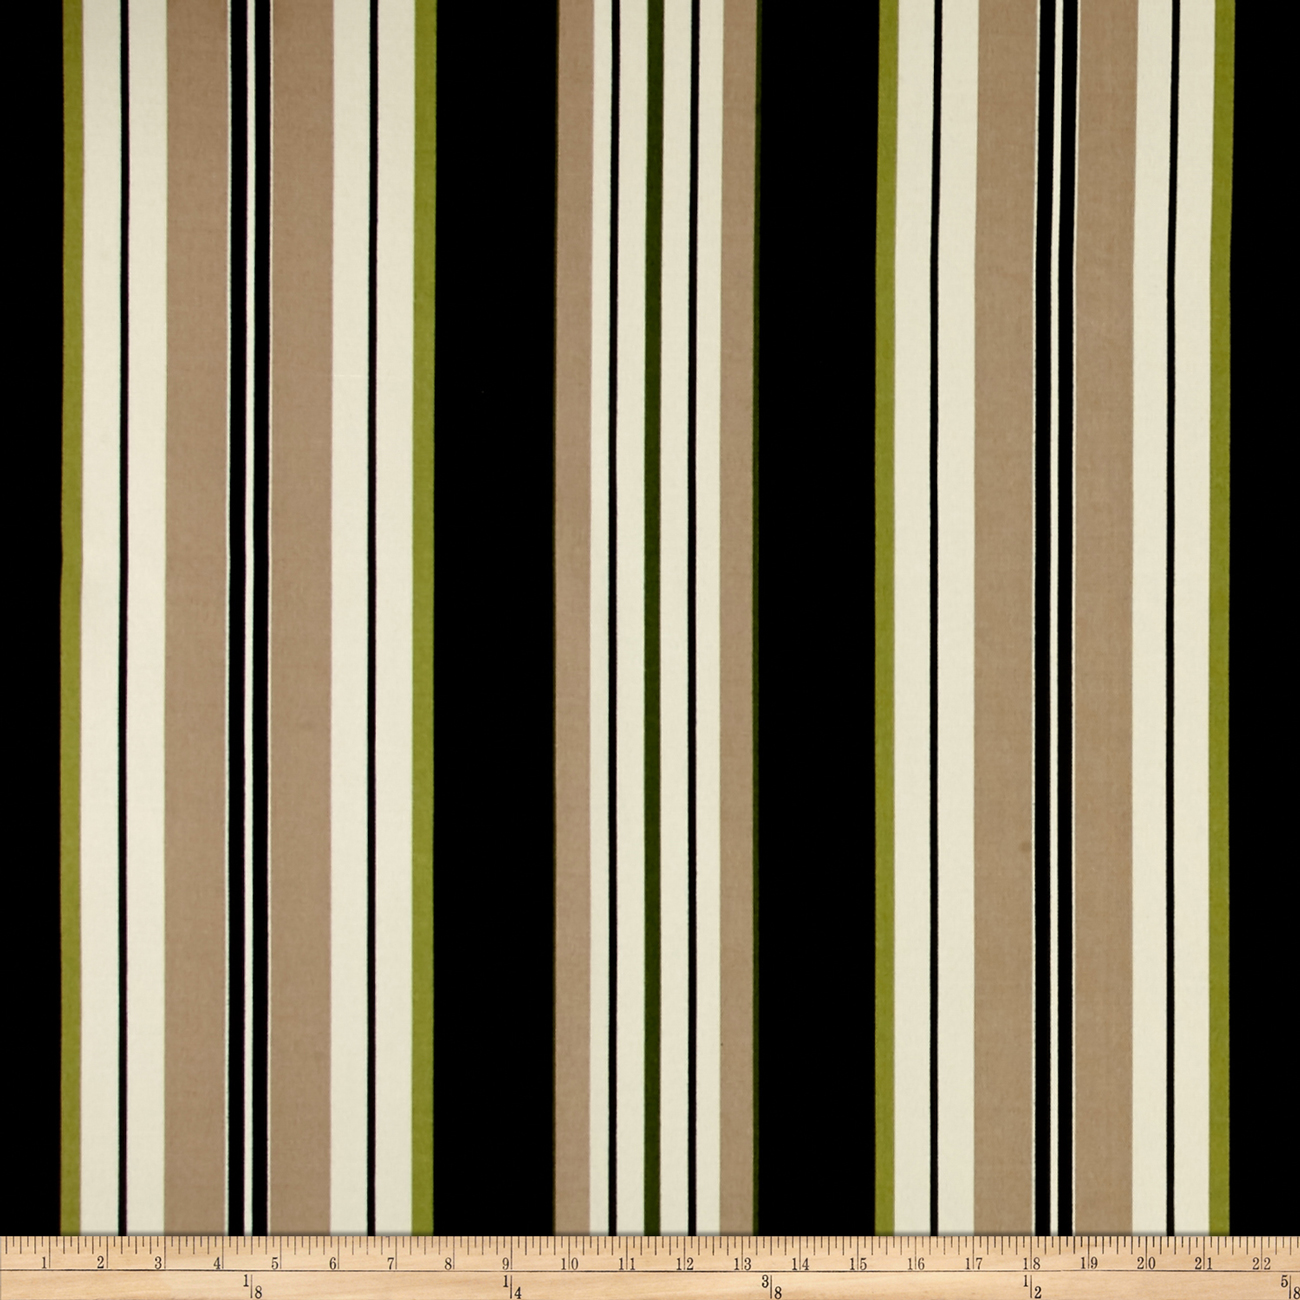 Bryant Indoor/Outdoor Lancaster Stripe Jet Black Fabric by Bryant in USA